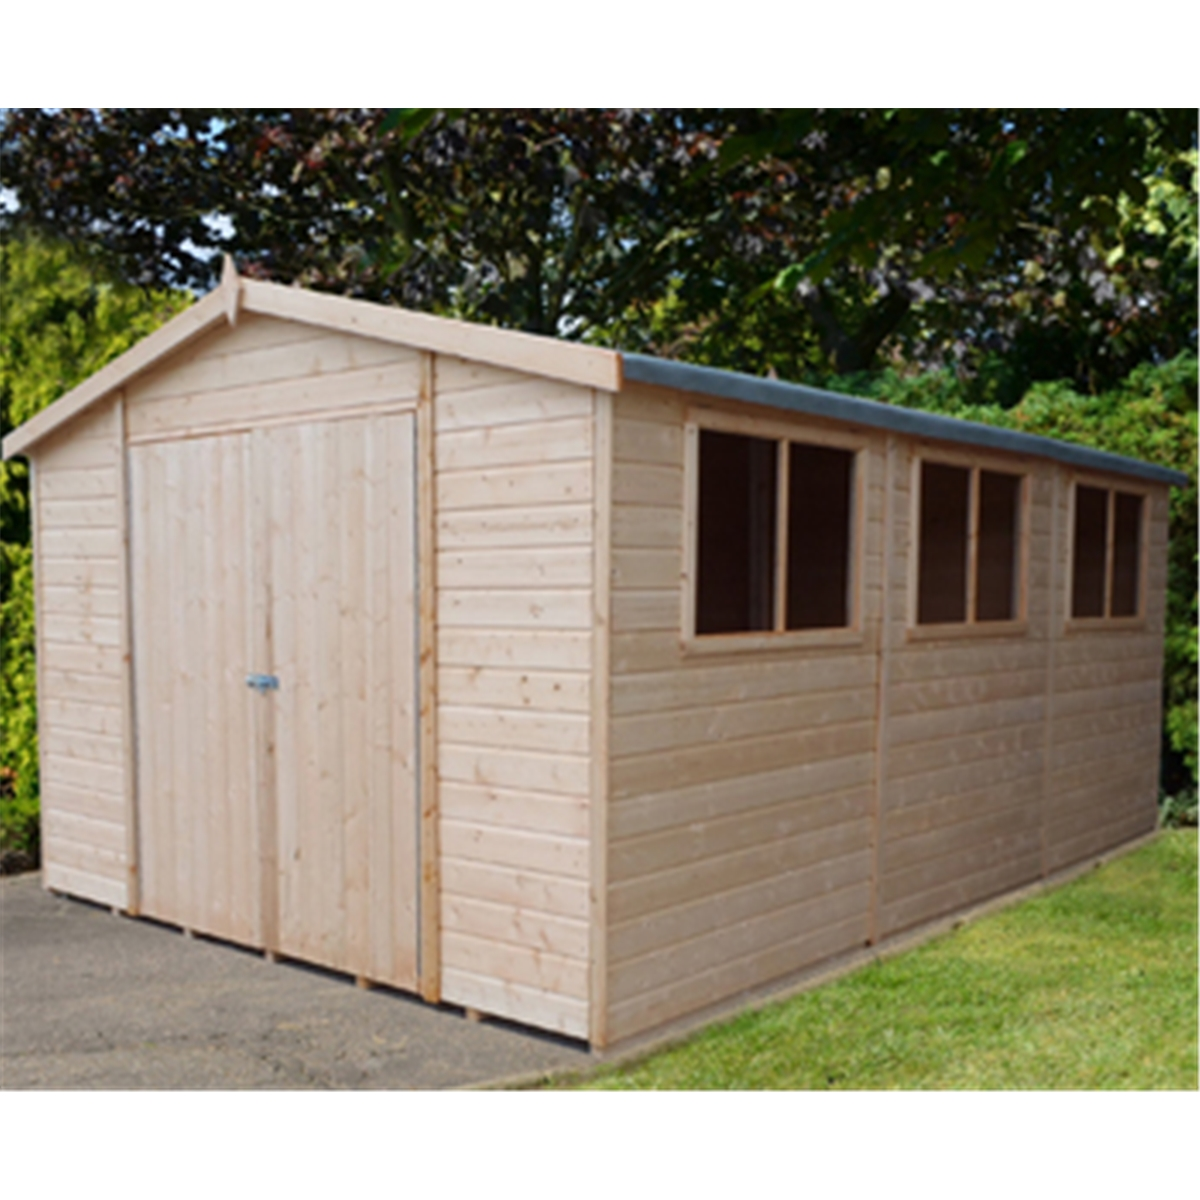 20 X 10 Tongue And Groove Wooden Garden Shed Workshop